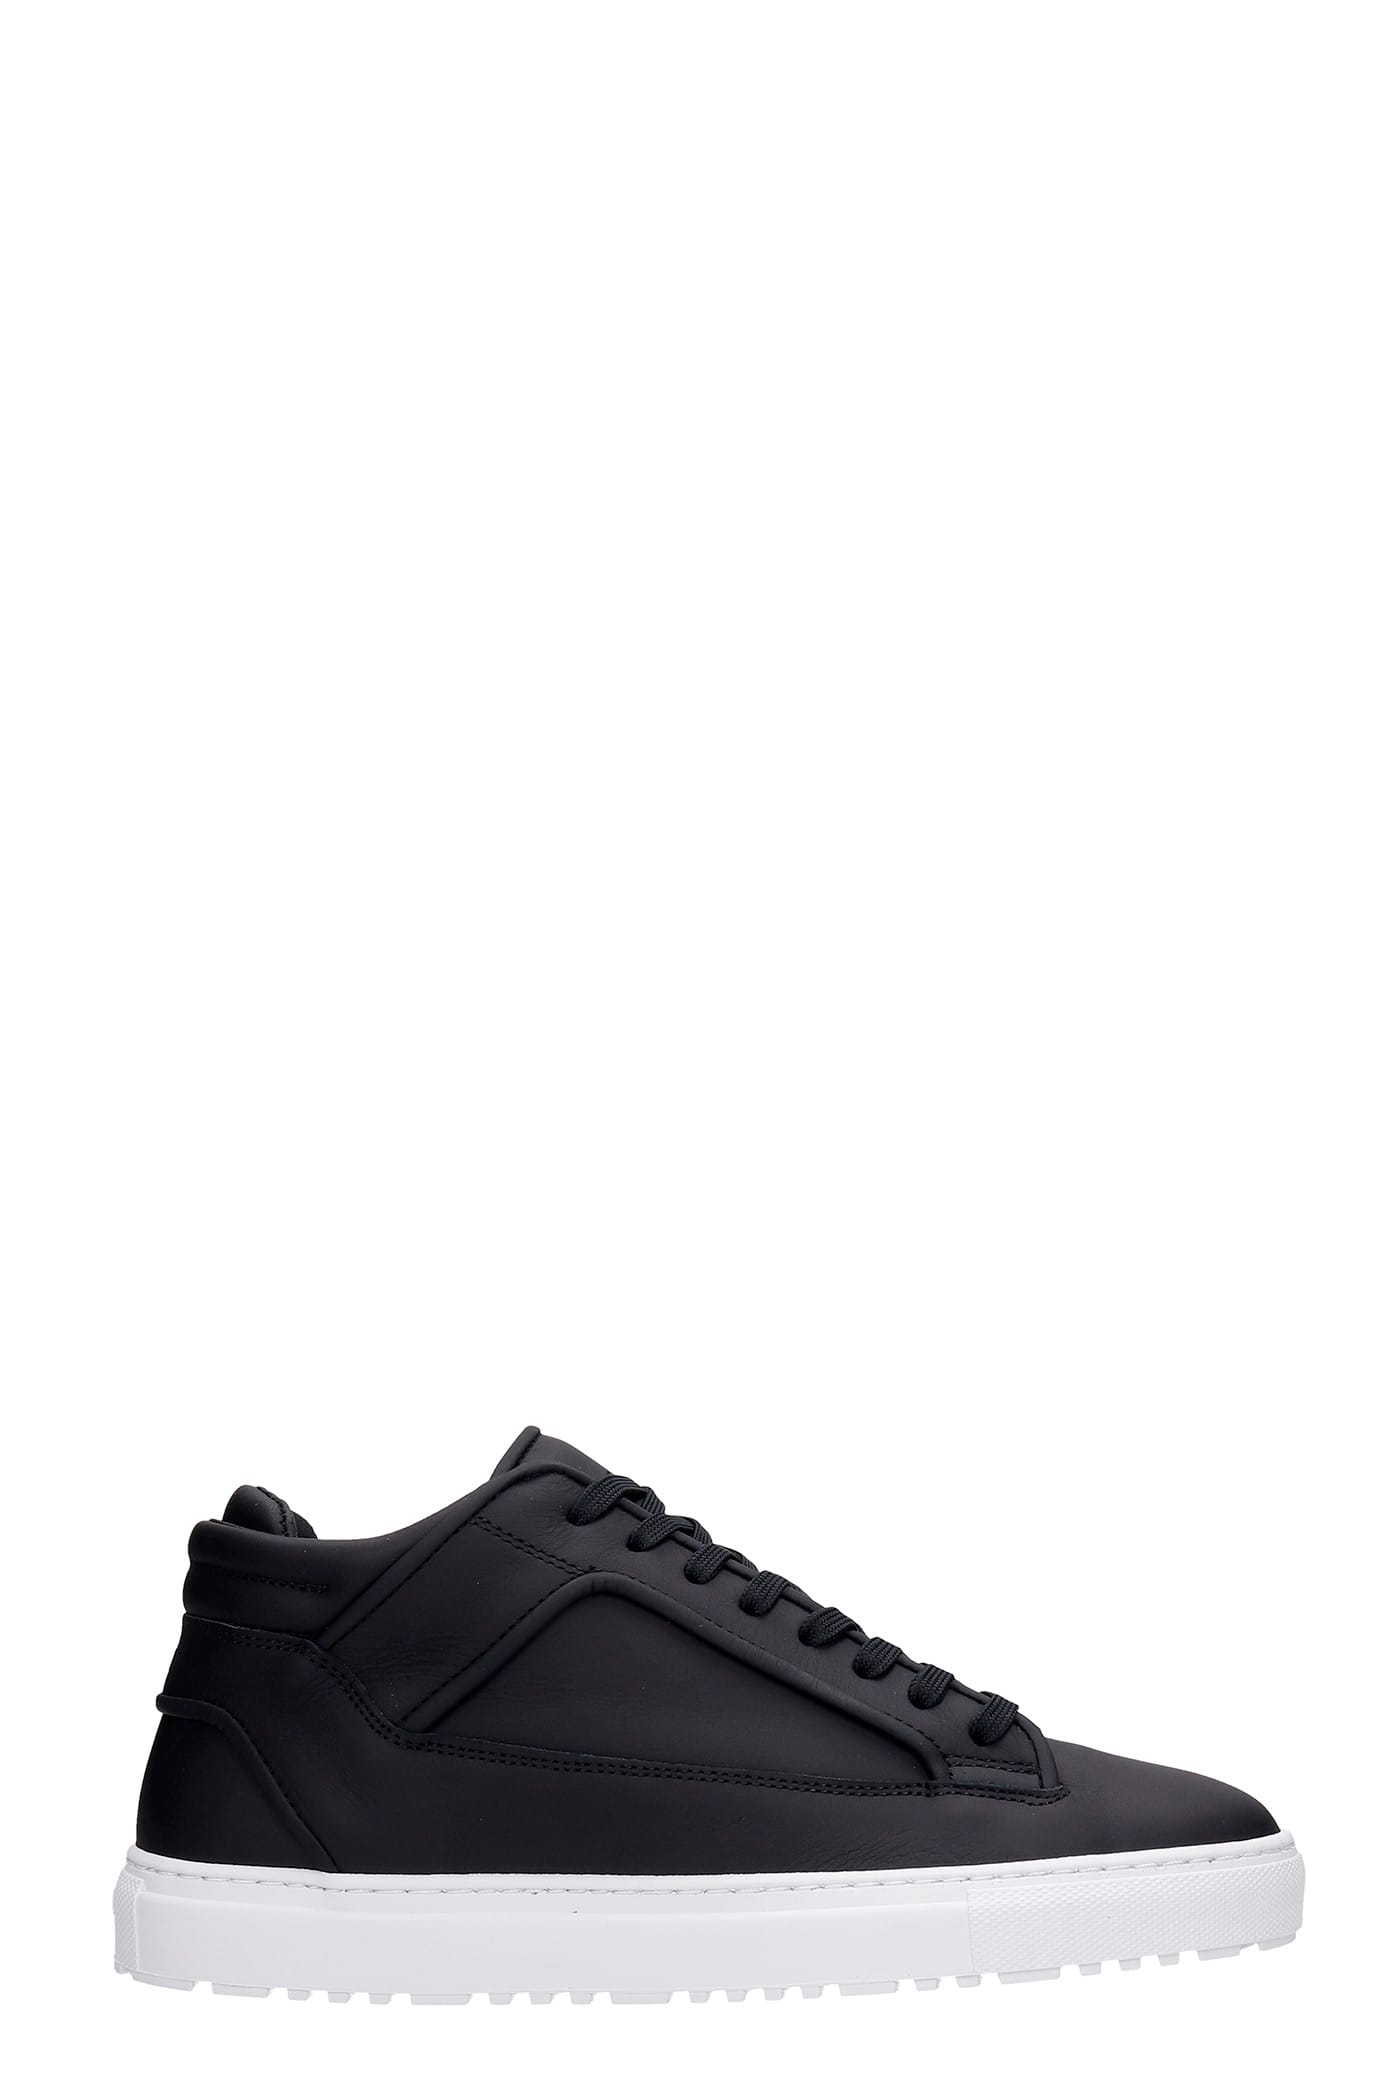 Mt 02 Sneakers In Black Leather